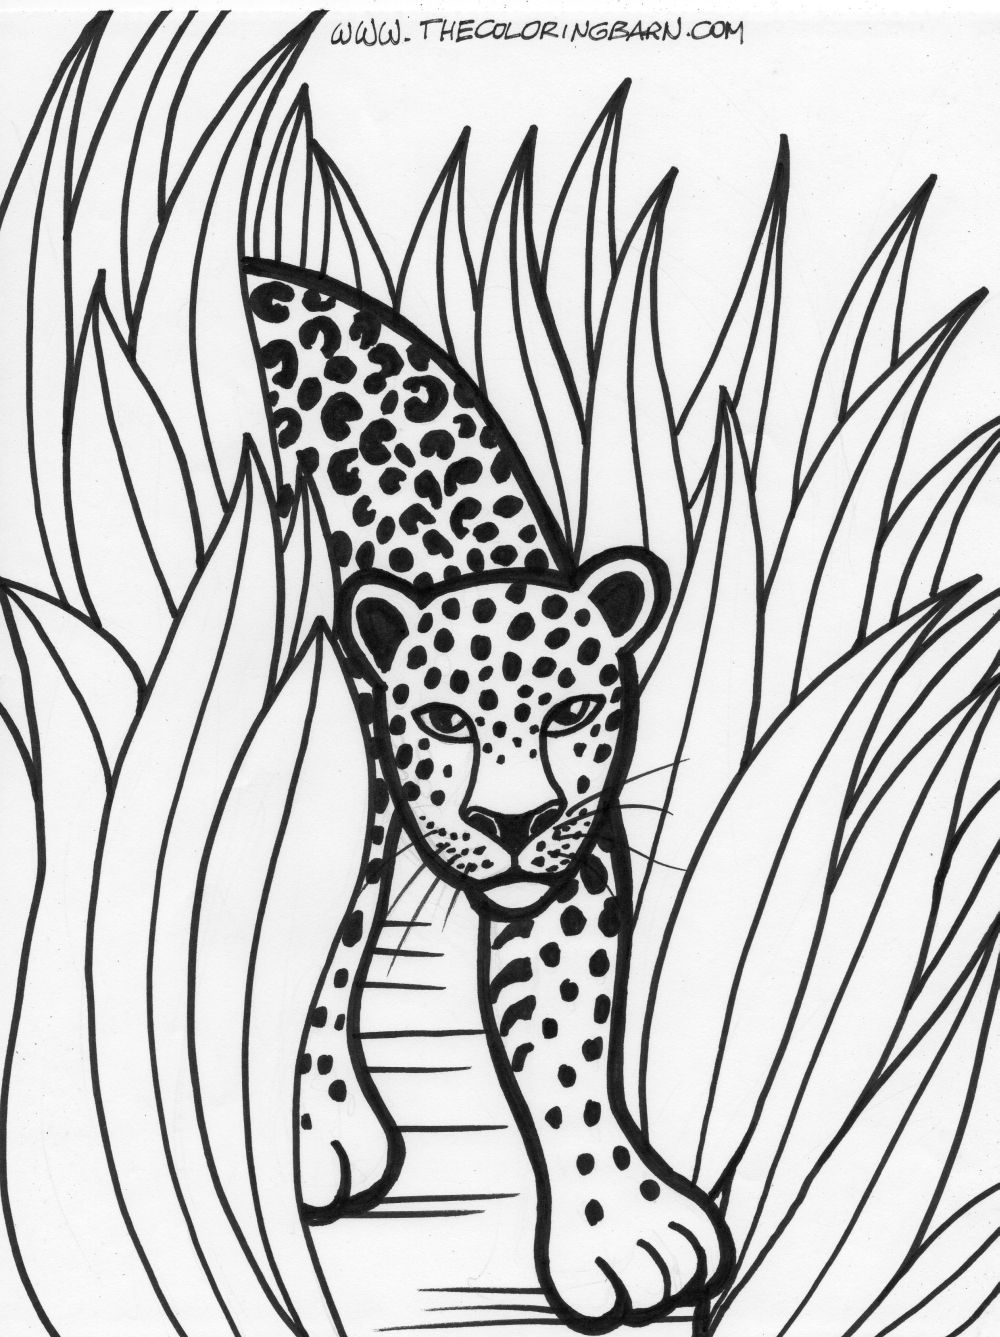 Rainforest Printable Coloring Pages The Coloring Barn Printable Dinosaur Coloring Pages Jungle Coloring Pages Animal Coloring Books